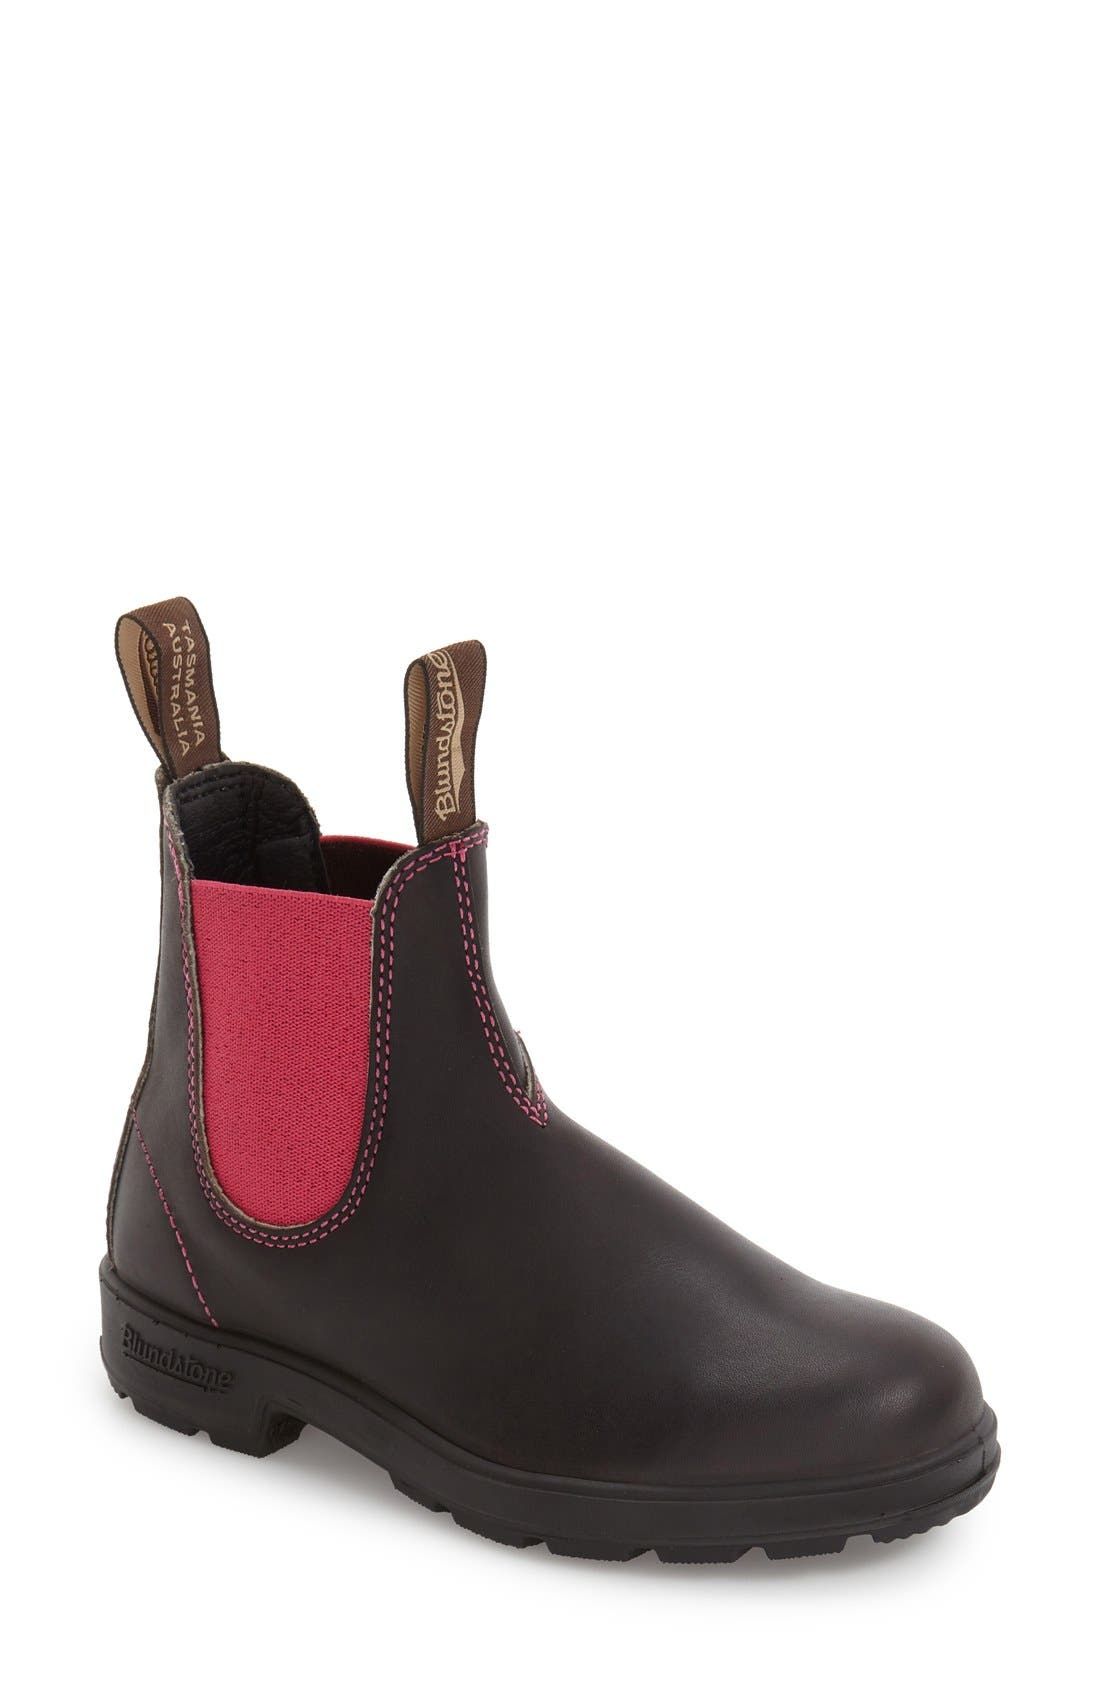 BLUNDSTONE Footwear 'Original - 500 Series' Water Resistant